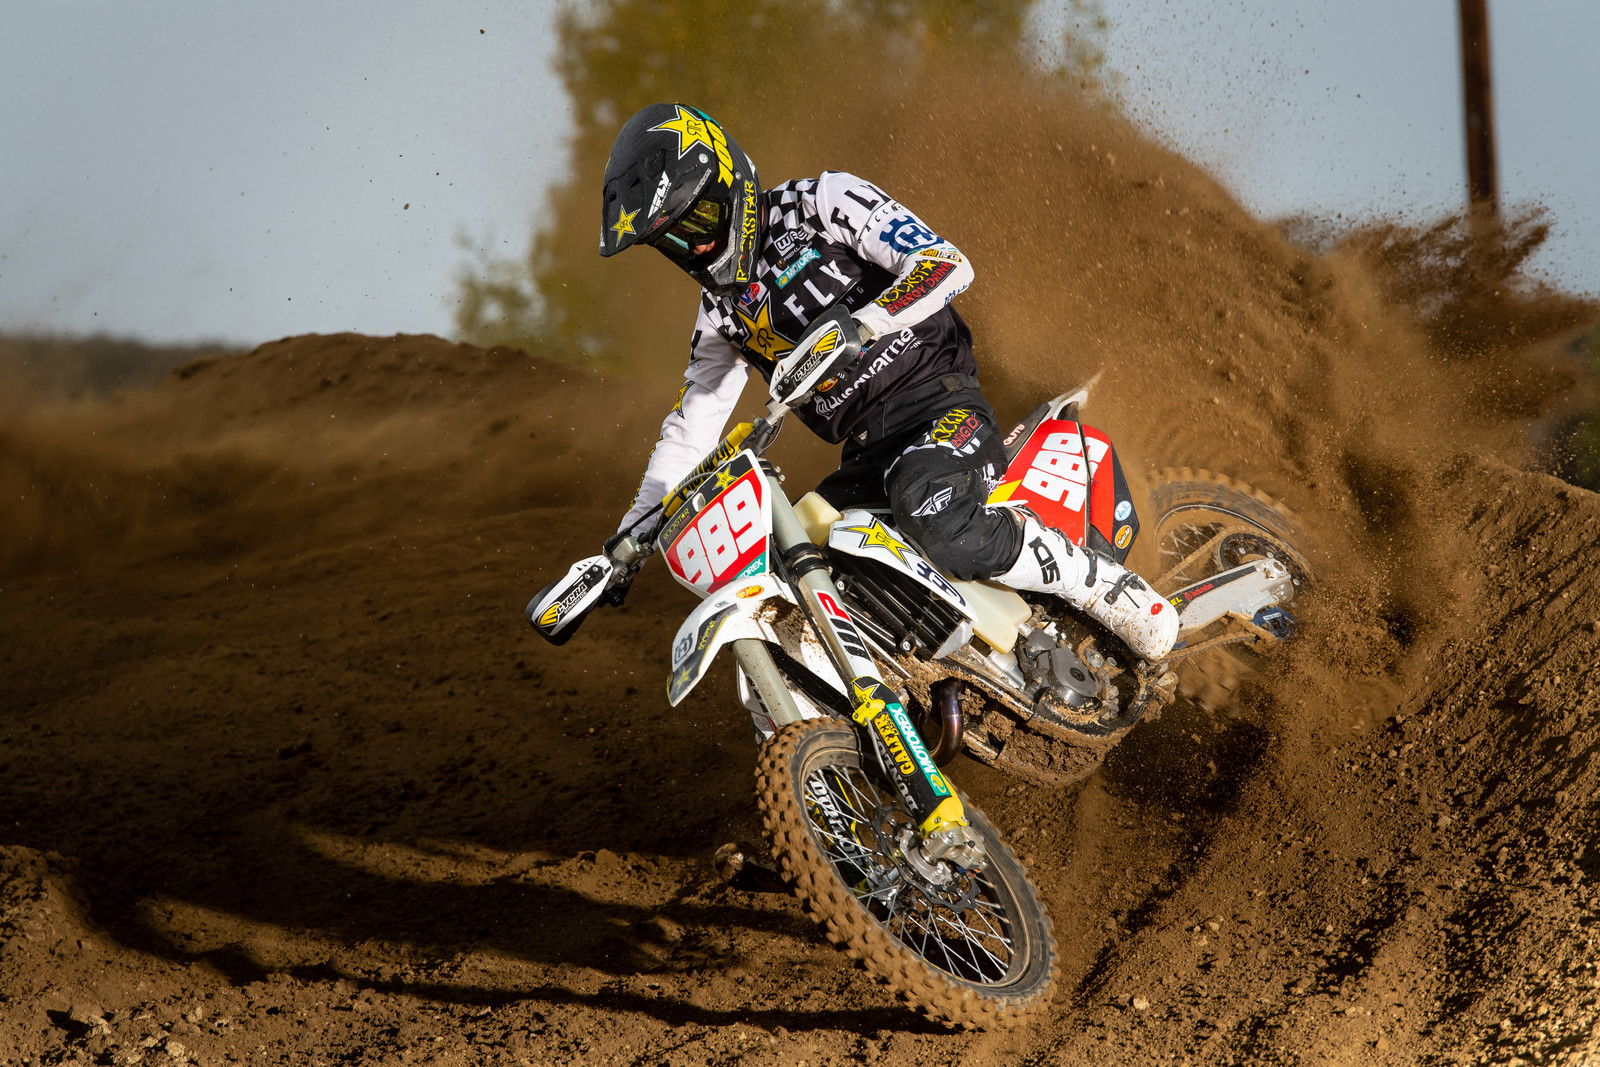 Thad Duvall on the FX 350